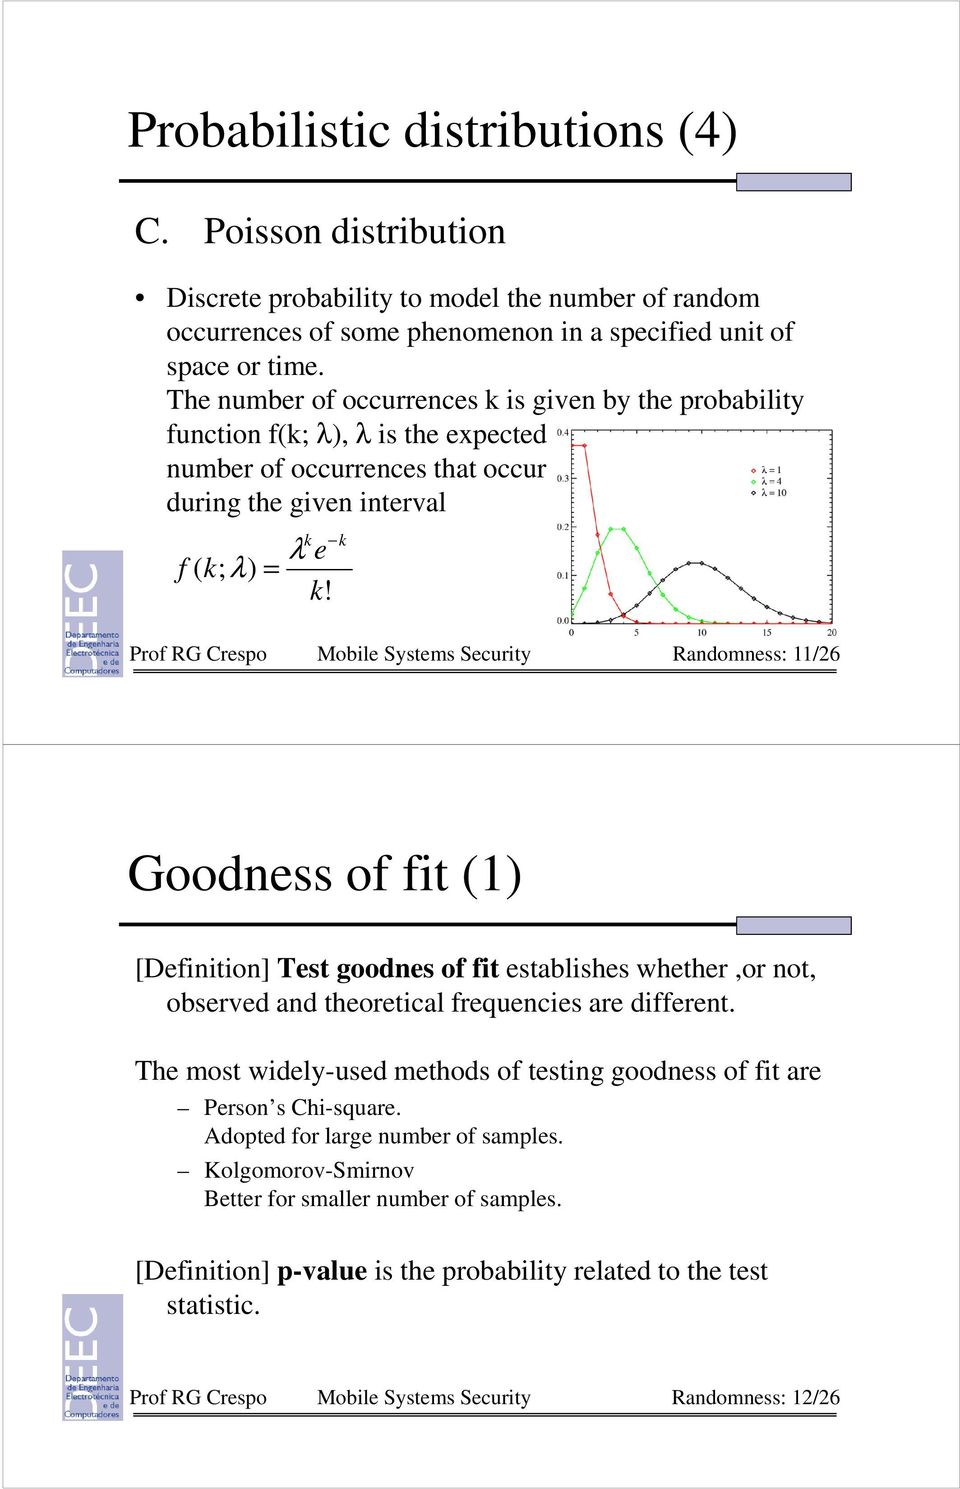 k k Prof RG Crespo Mobile Systems Security Randomness: 11/6 Goodness of fit (1) [Definition] Test goodnes of fit establishes whether,or not, observed and theoretical frequencies are different.